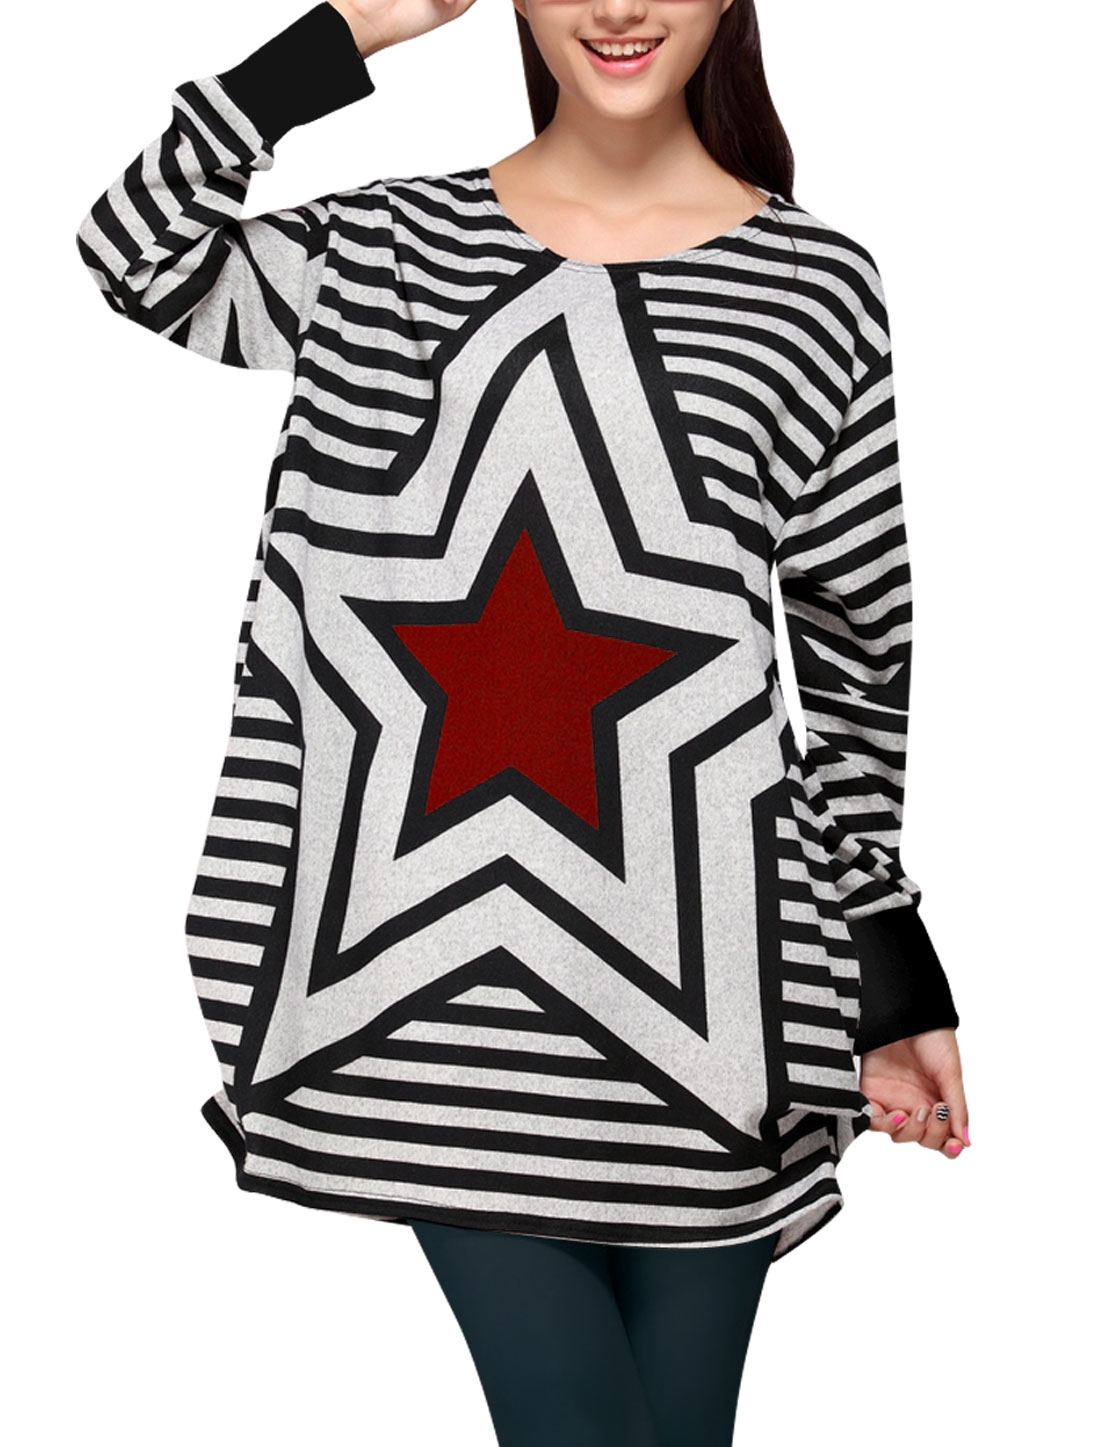 Women's Stylish Red Stars Pattern Stripes Casual Tunic Shirt M